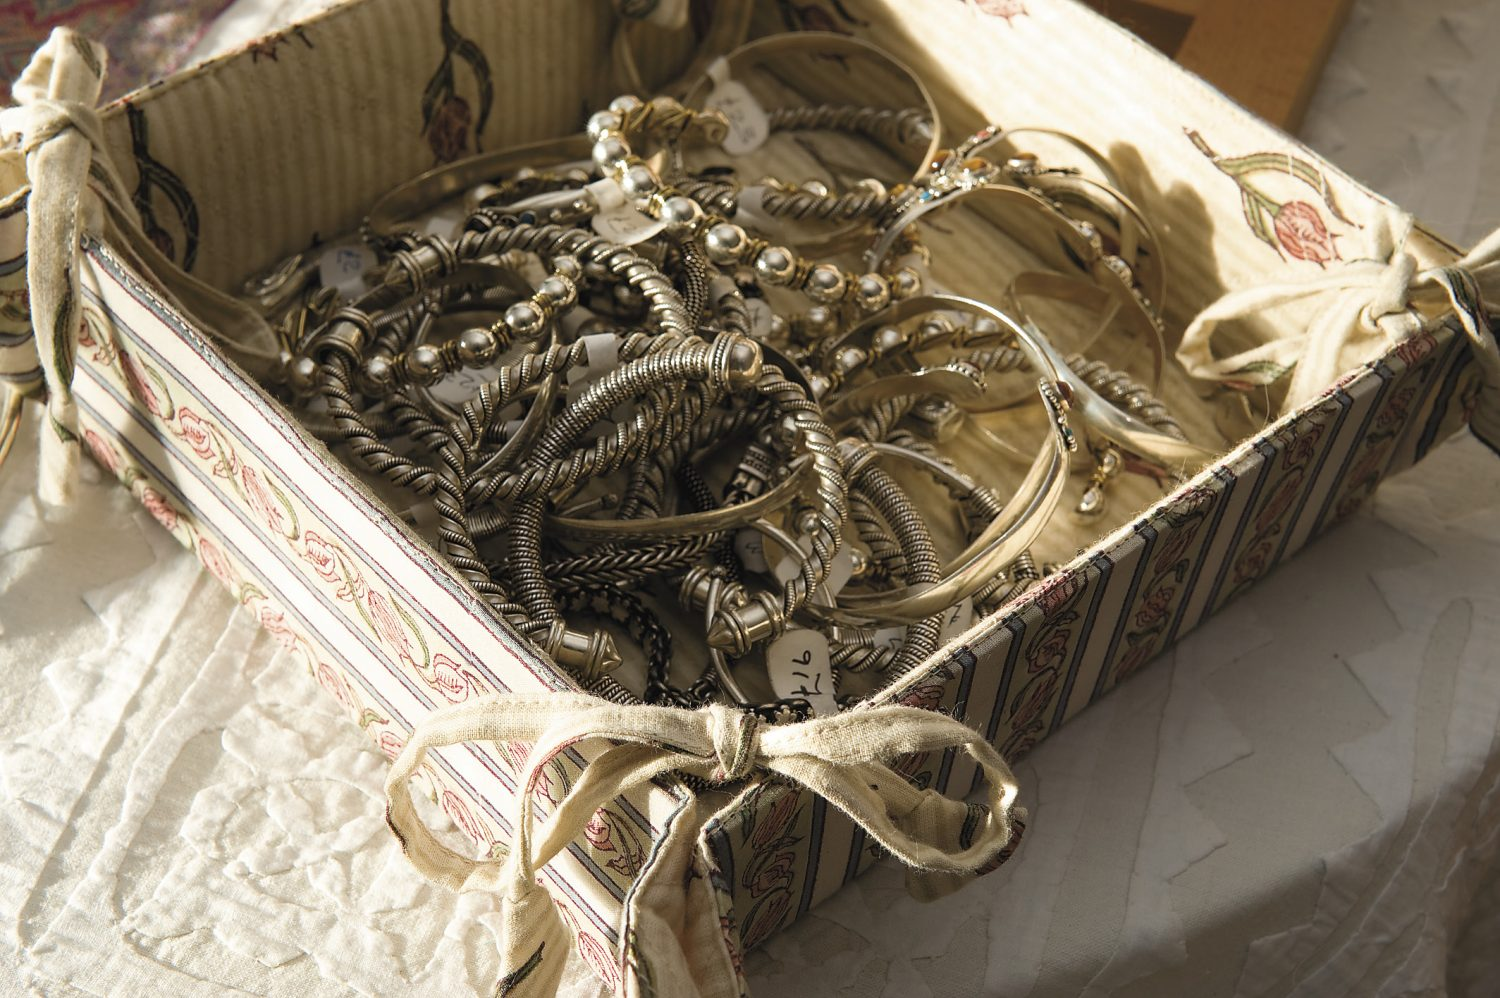 jewellery, made from silver and semi-precious stones, was sourced by Jemima on a buying trip to India